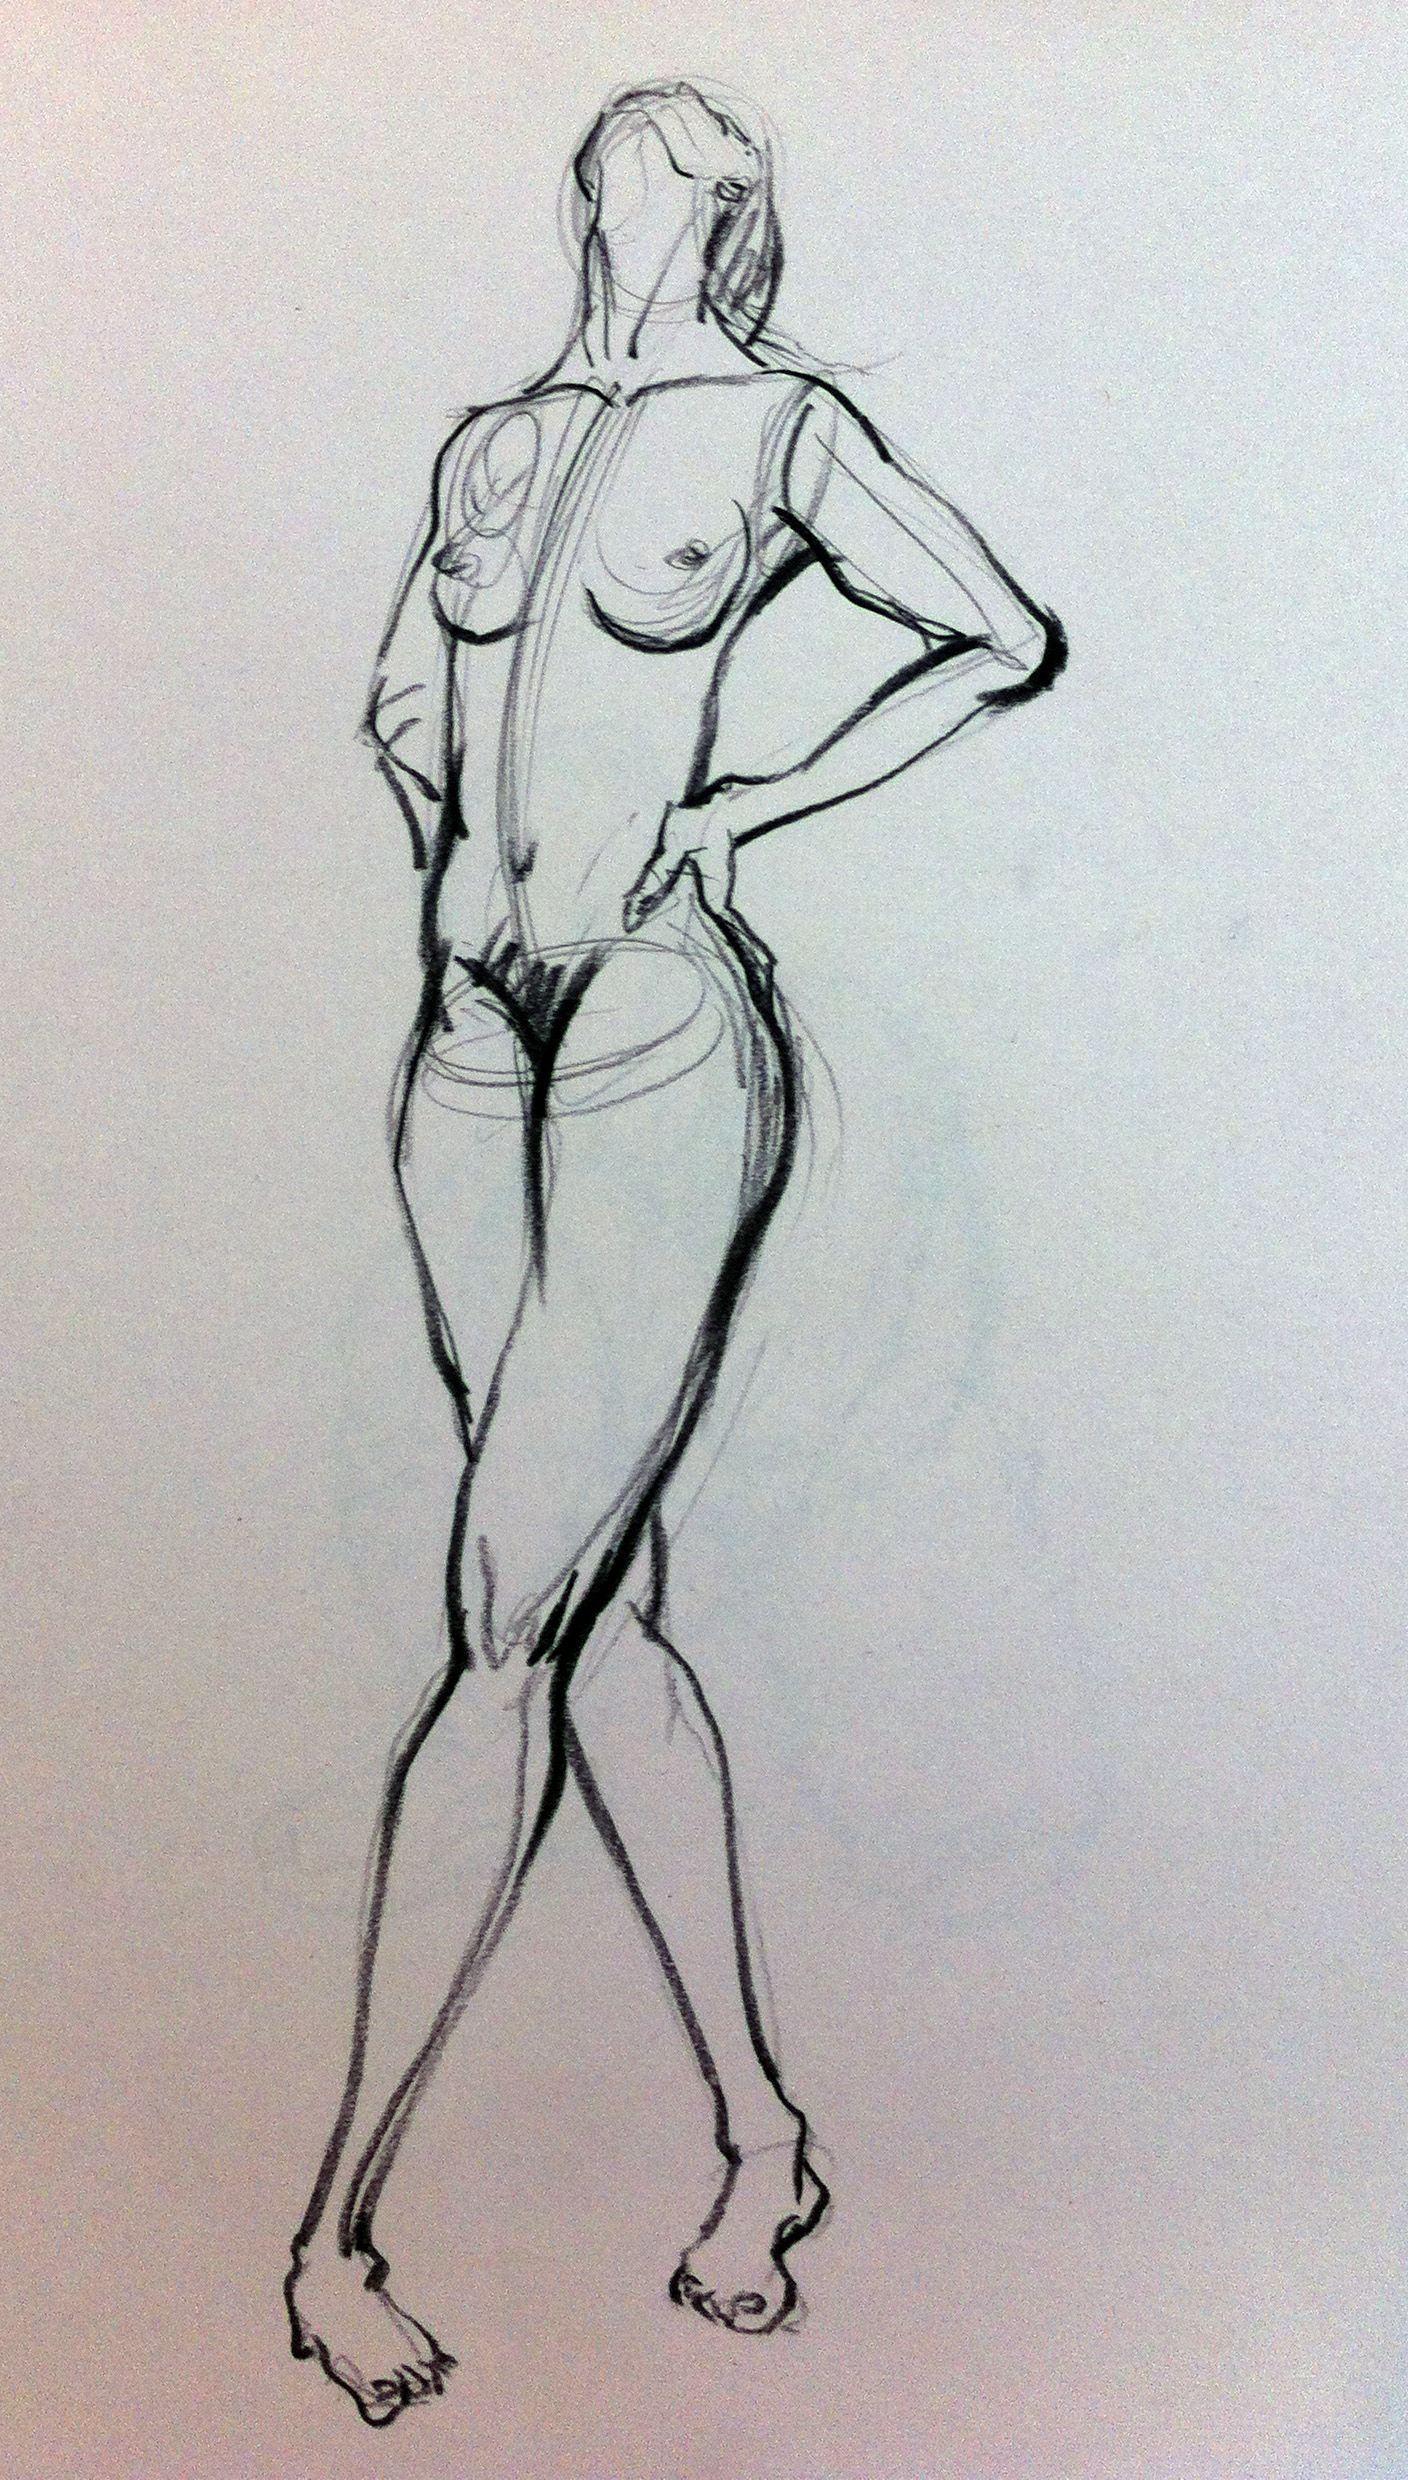 nude drawing in 5min. # conte | Fashion Illustrations | Pinterest ...